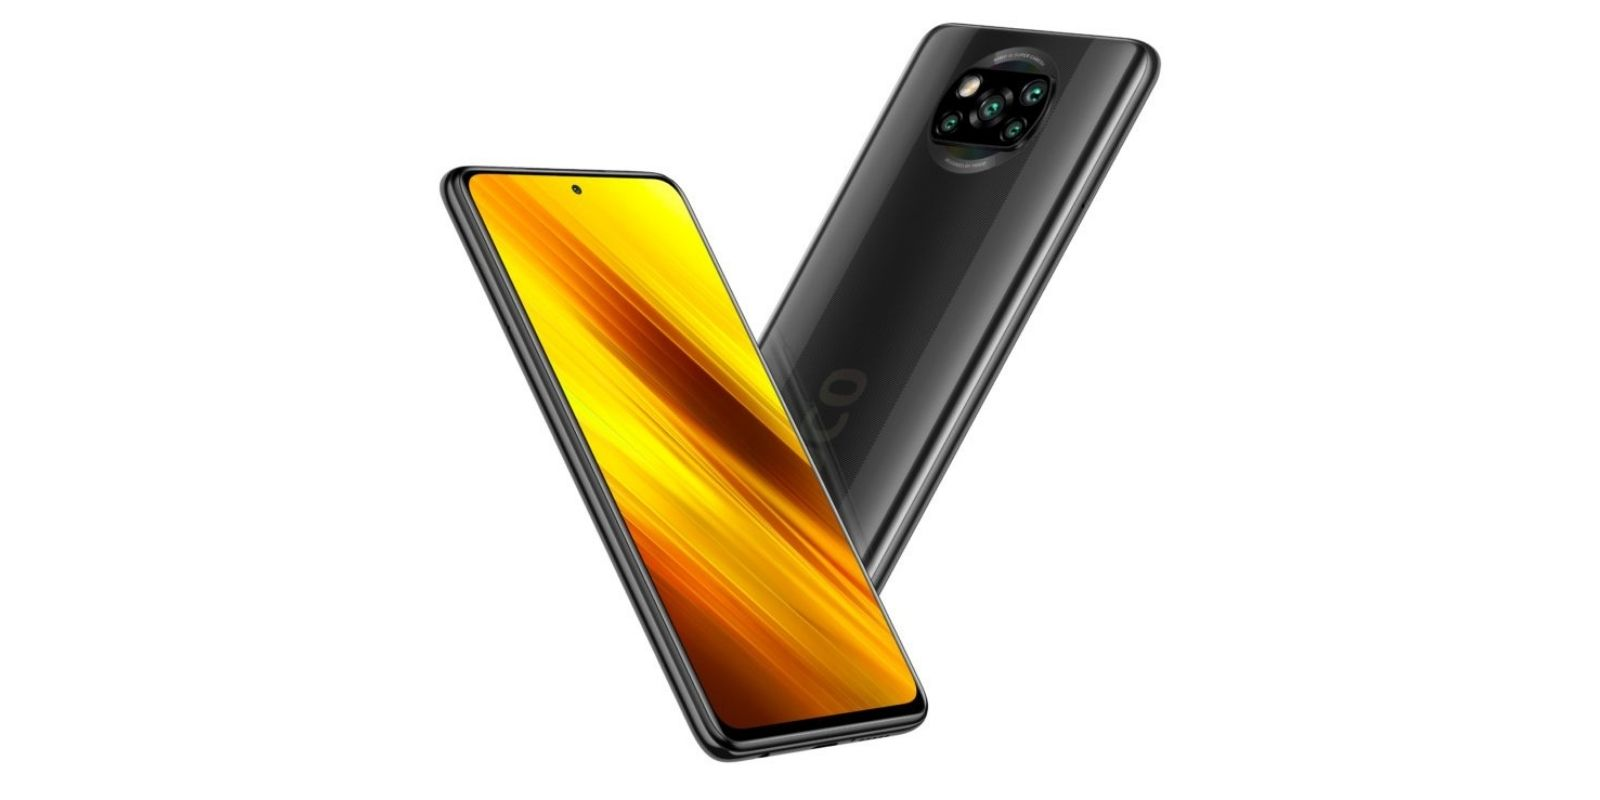 POCO X3 launched in India with a 120Hz display, 6,000mAh battery, and Snapdragon 732G